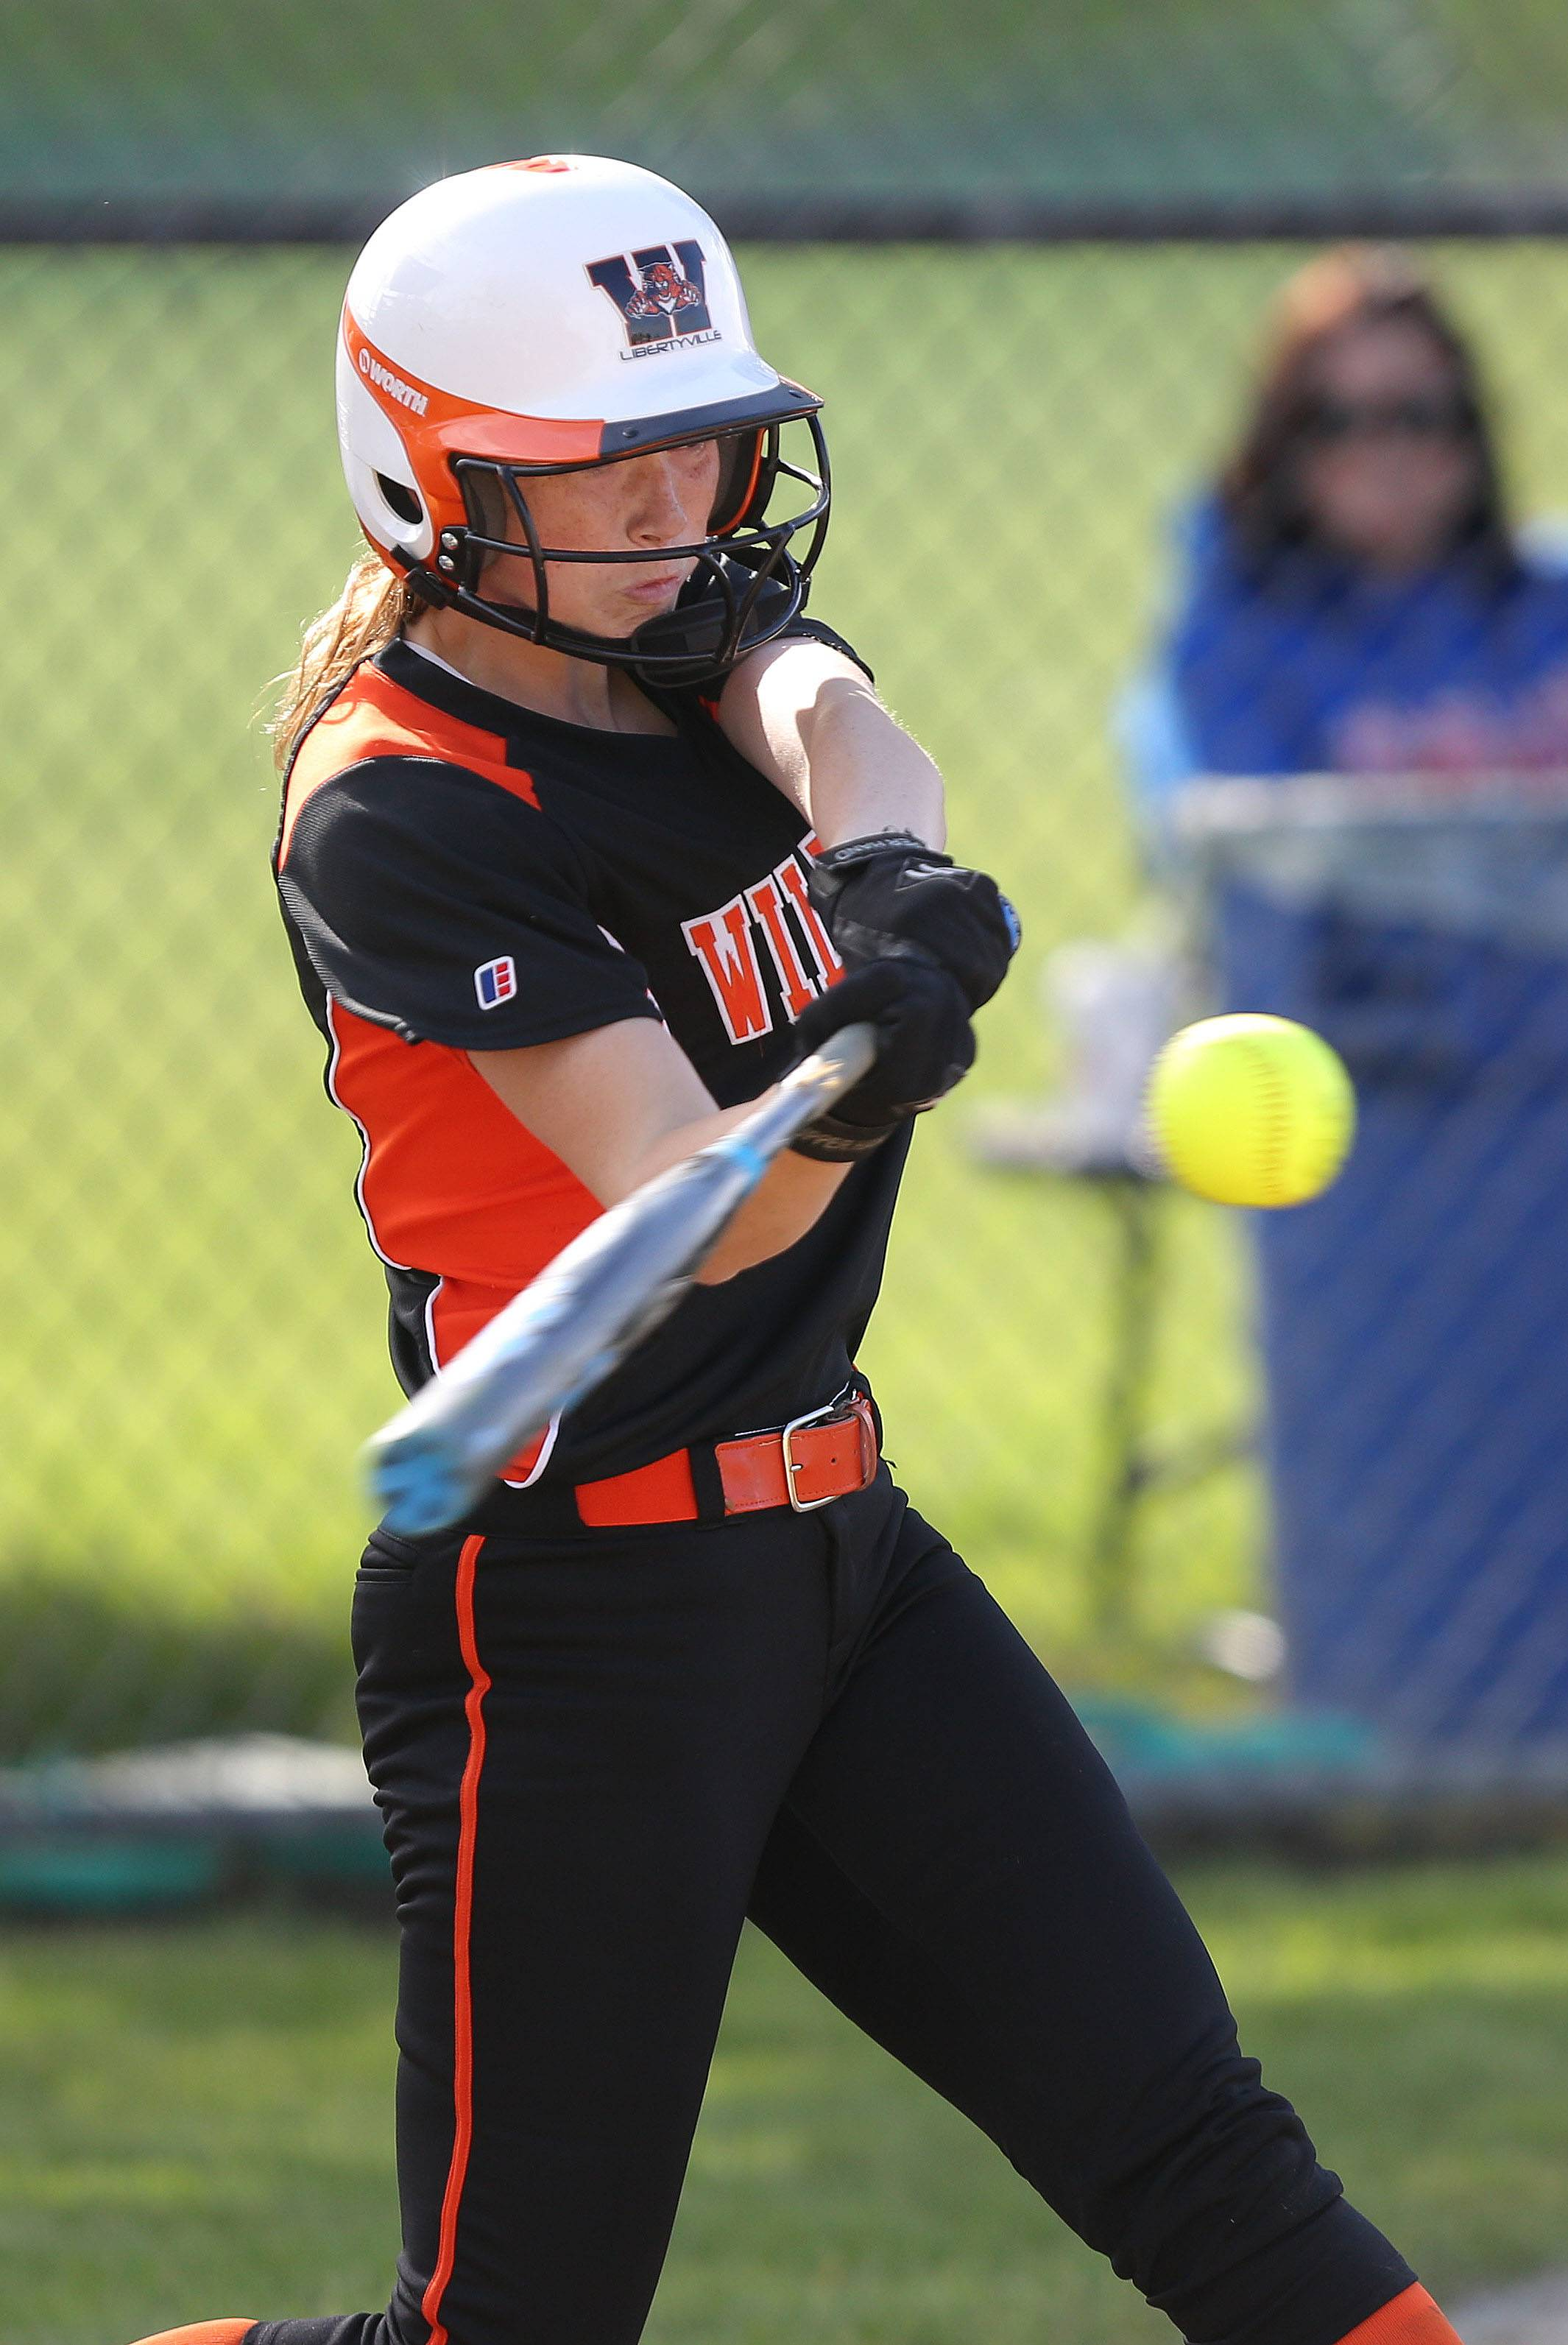 Libertyville's Hannah Herrarty connects in sectional semifinal play against Lake Zurich on Wednesday at Stevenson.